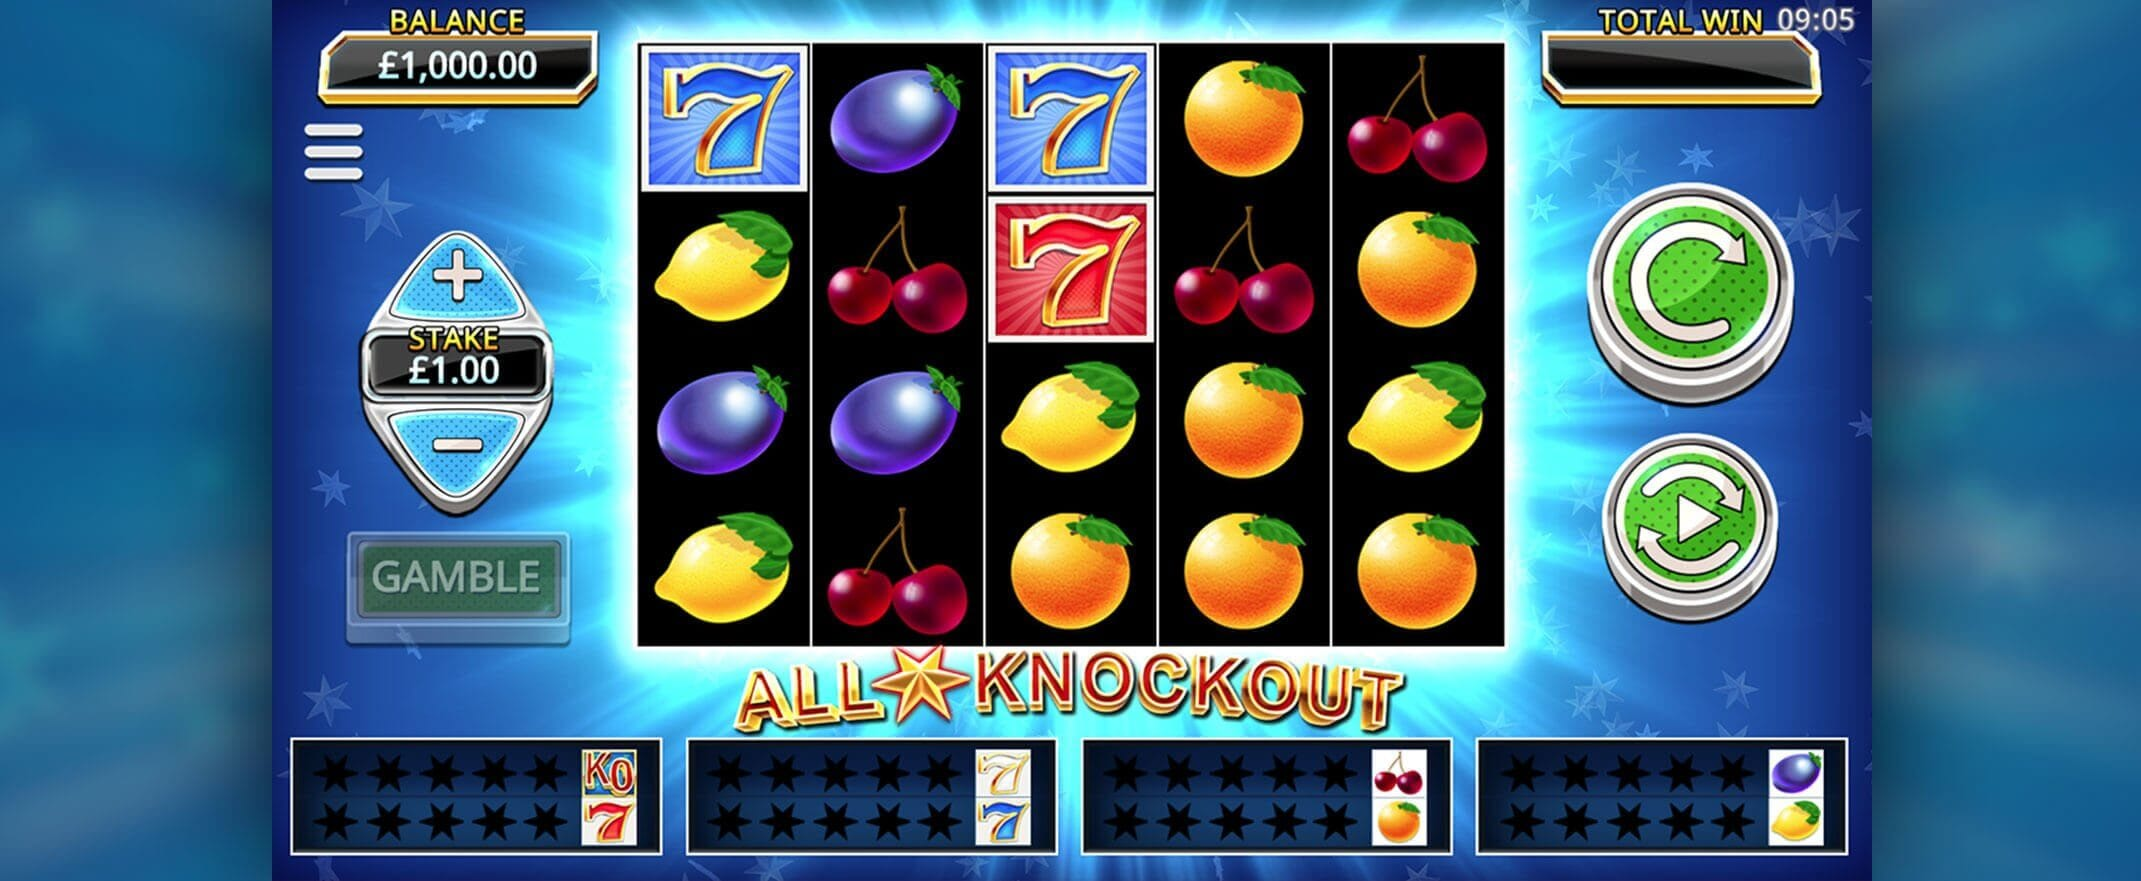 All Star Knockout Slot Gameplay